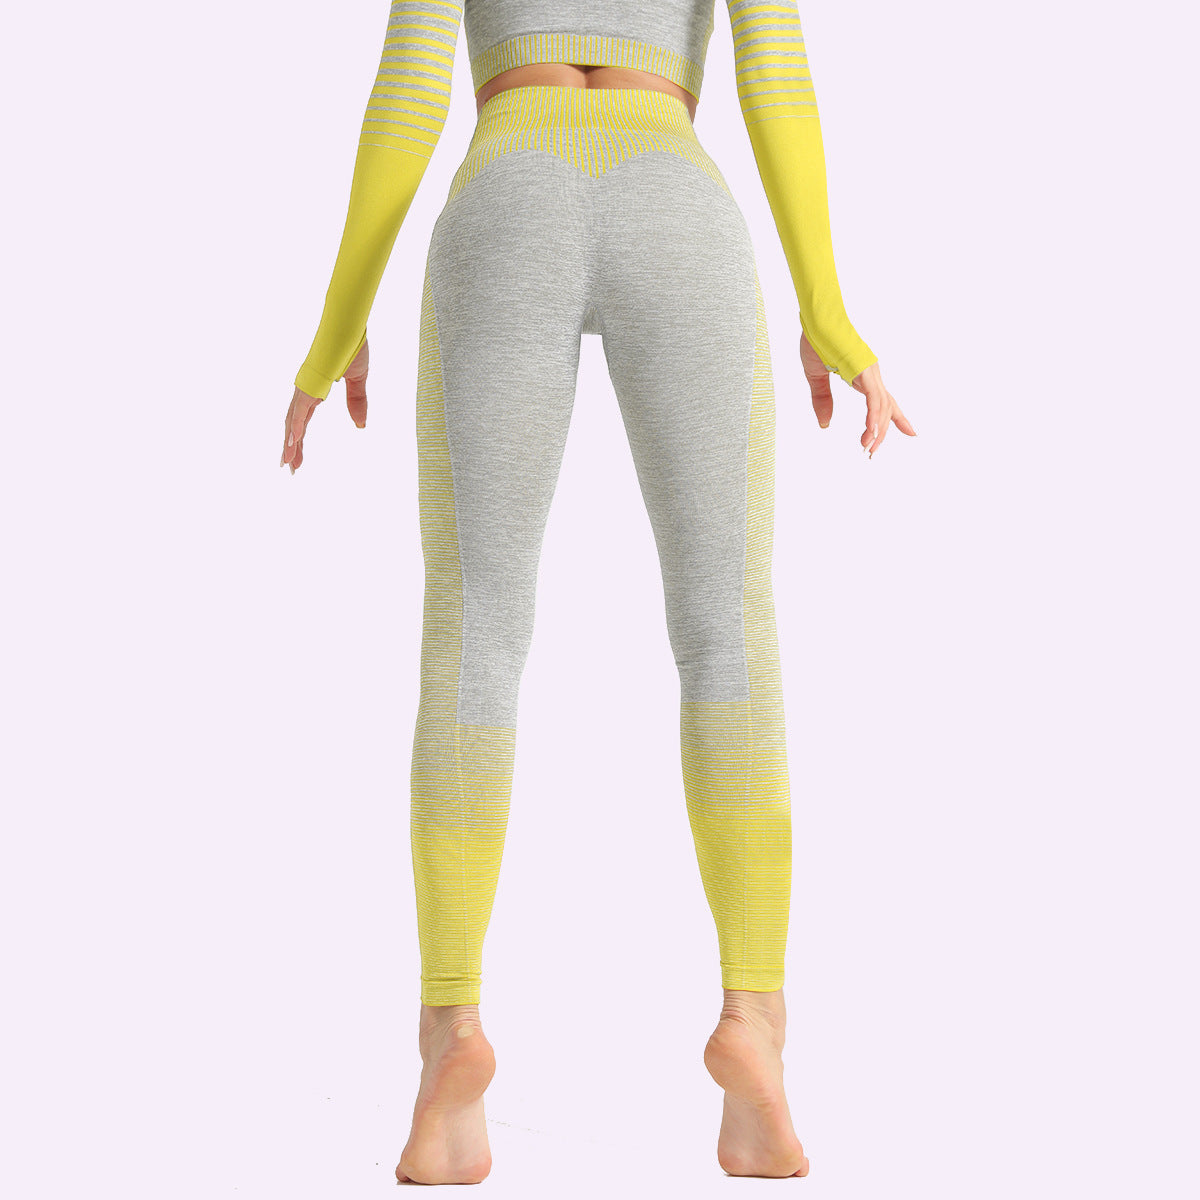 2020 Women Stripe Sports Pants High Elasticity Hip Lift High Waisted Leggings Pants Yoga Pants YS-018